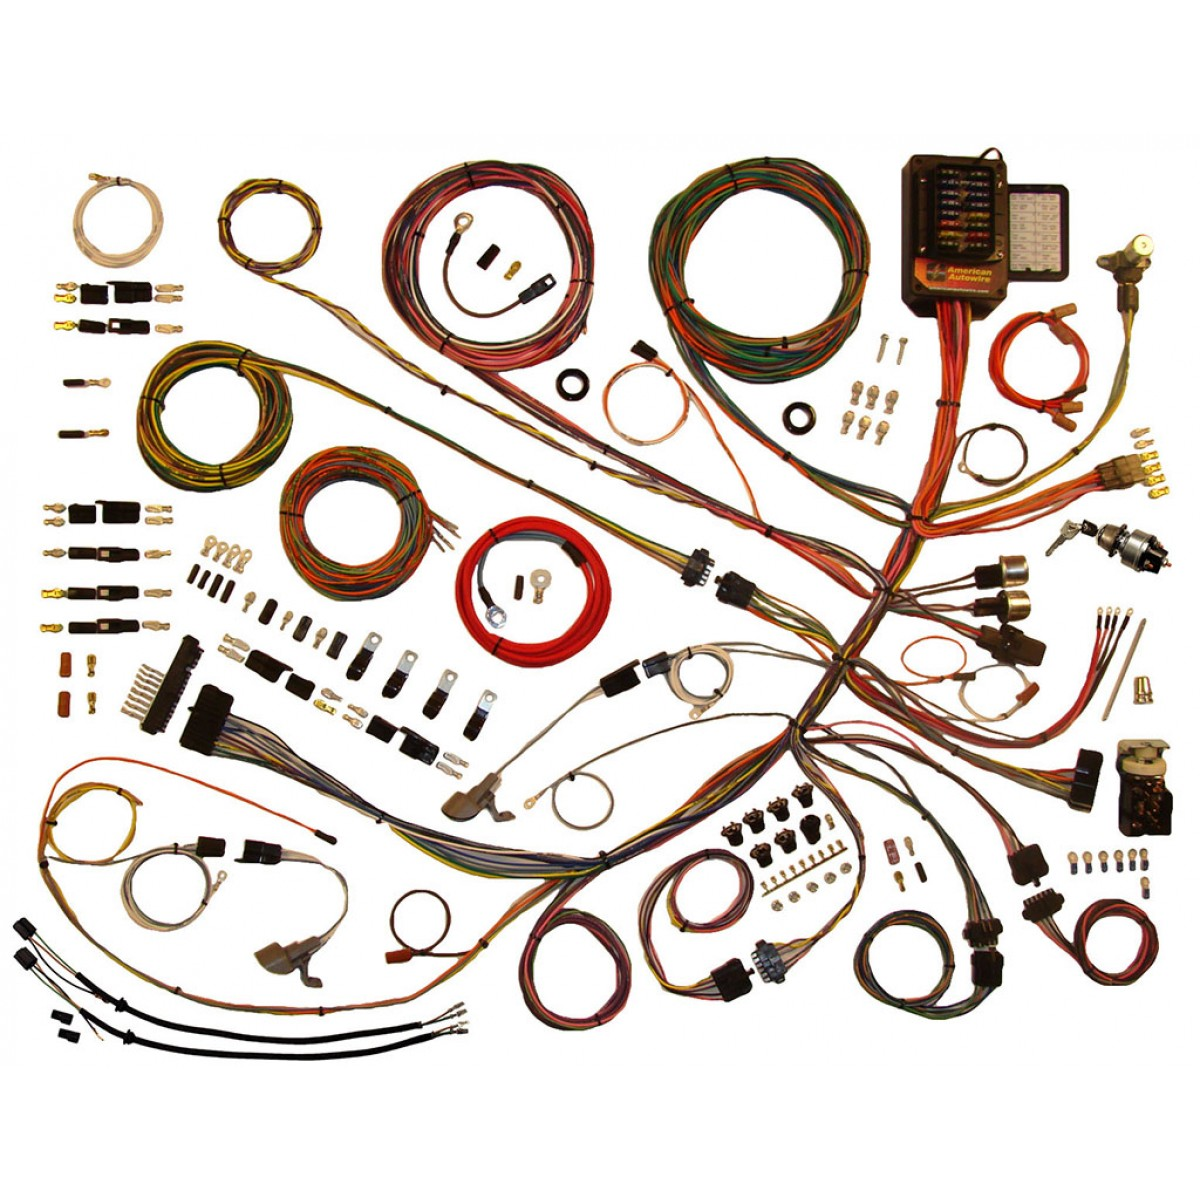 complete wiring harness kit 1953 1956 ford f100 part 510303 ford truck wiring harness f100 1953 1956 ford f100 wiring harness complete wiring harness kit ford truck wiring harness at nearapp.co